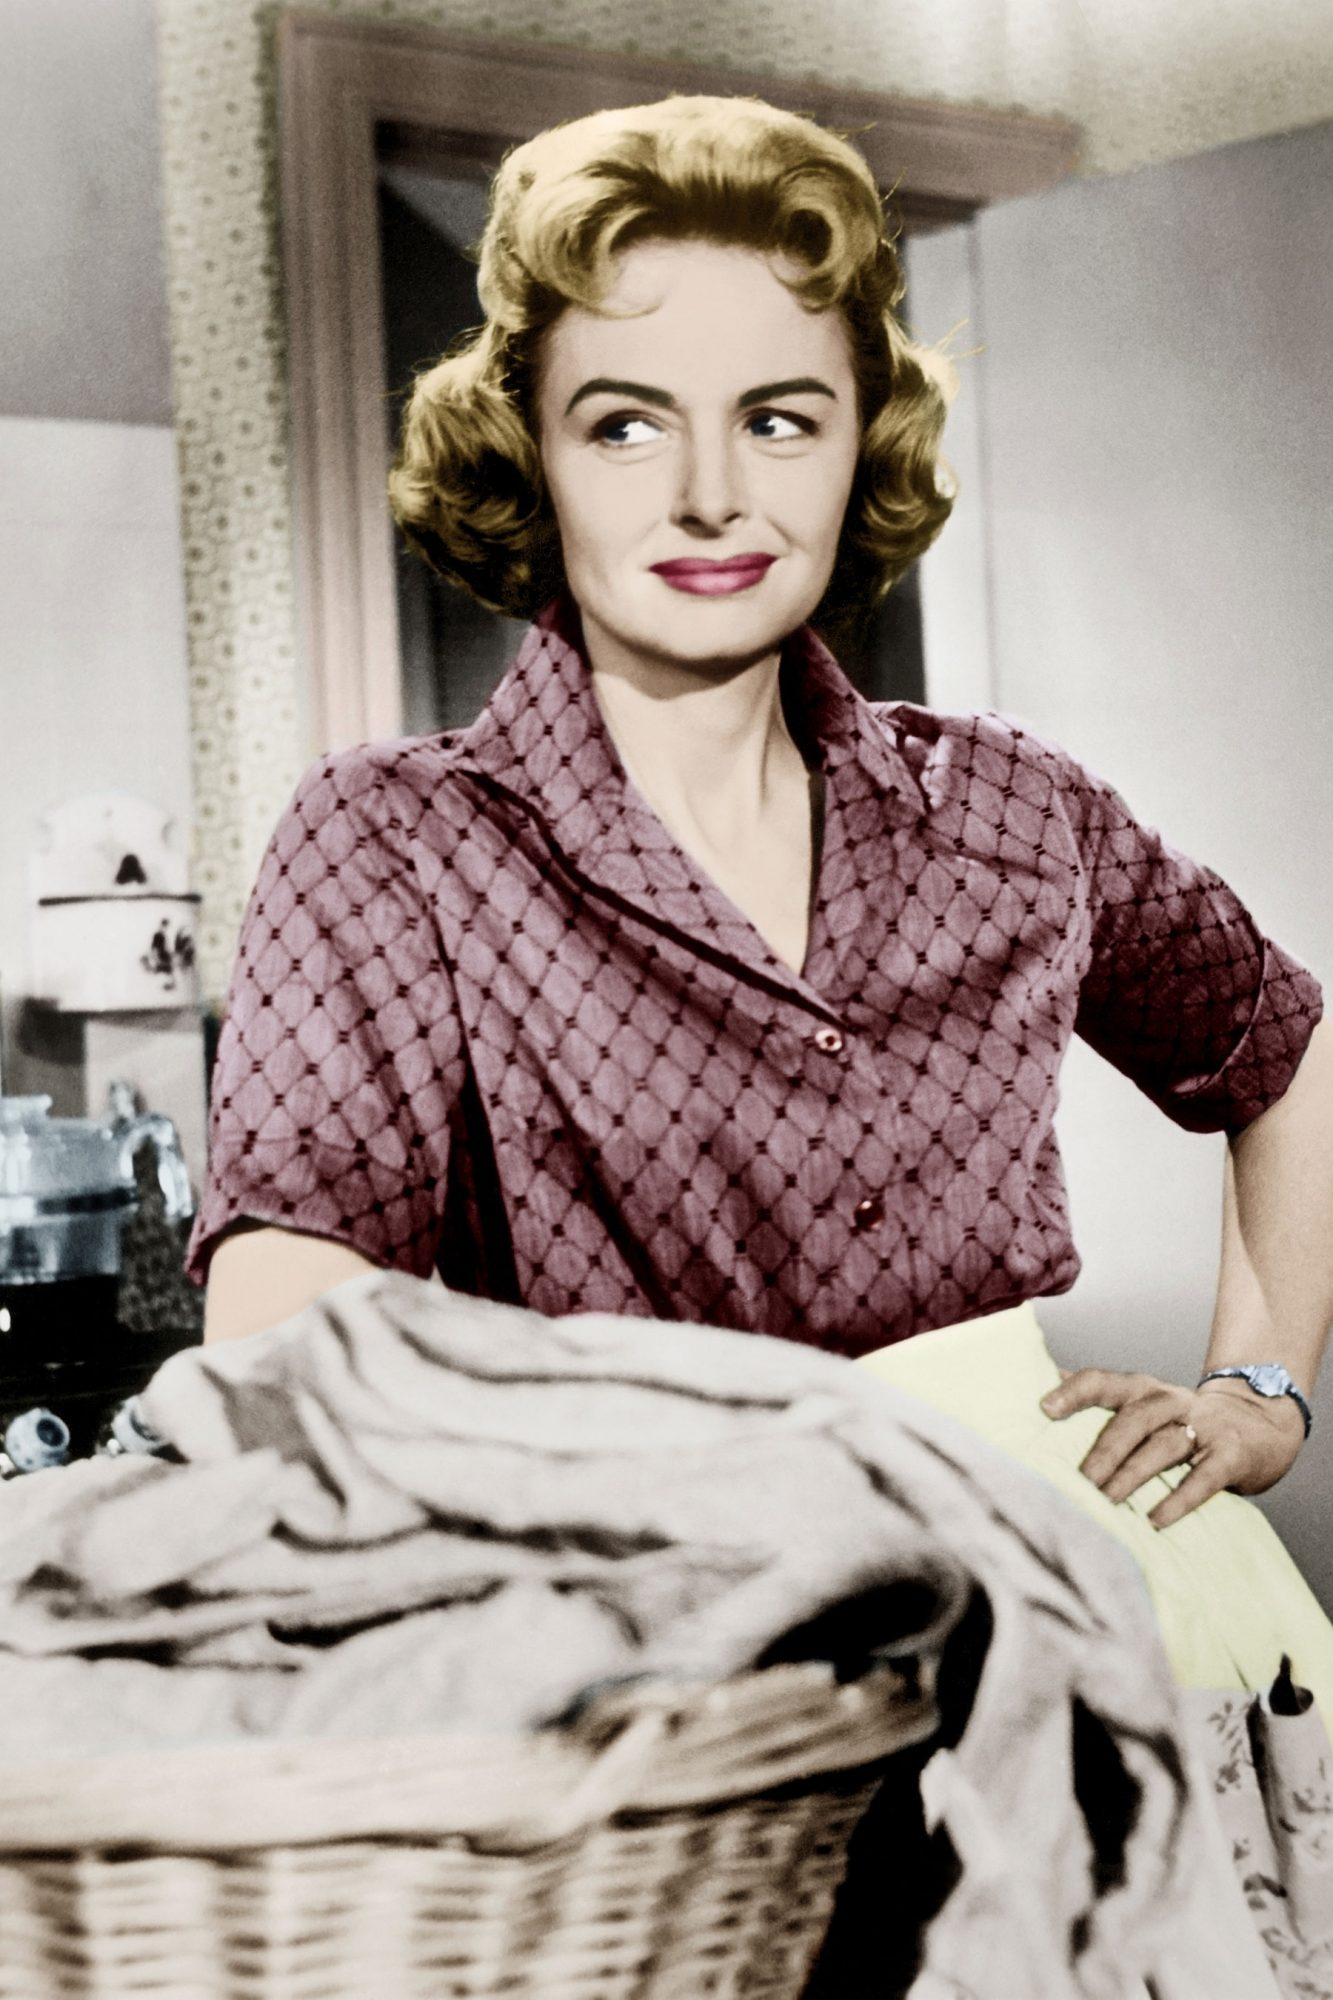 THE DONNA REED SHOW, Donna Reed, 'The Free Soul', (Season 2, aired Feb. 4, 1960), 1958-1966